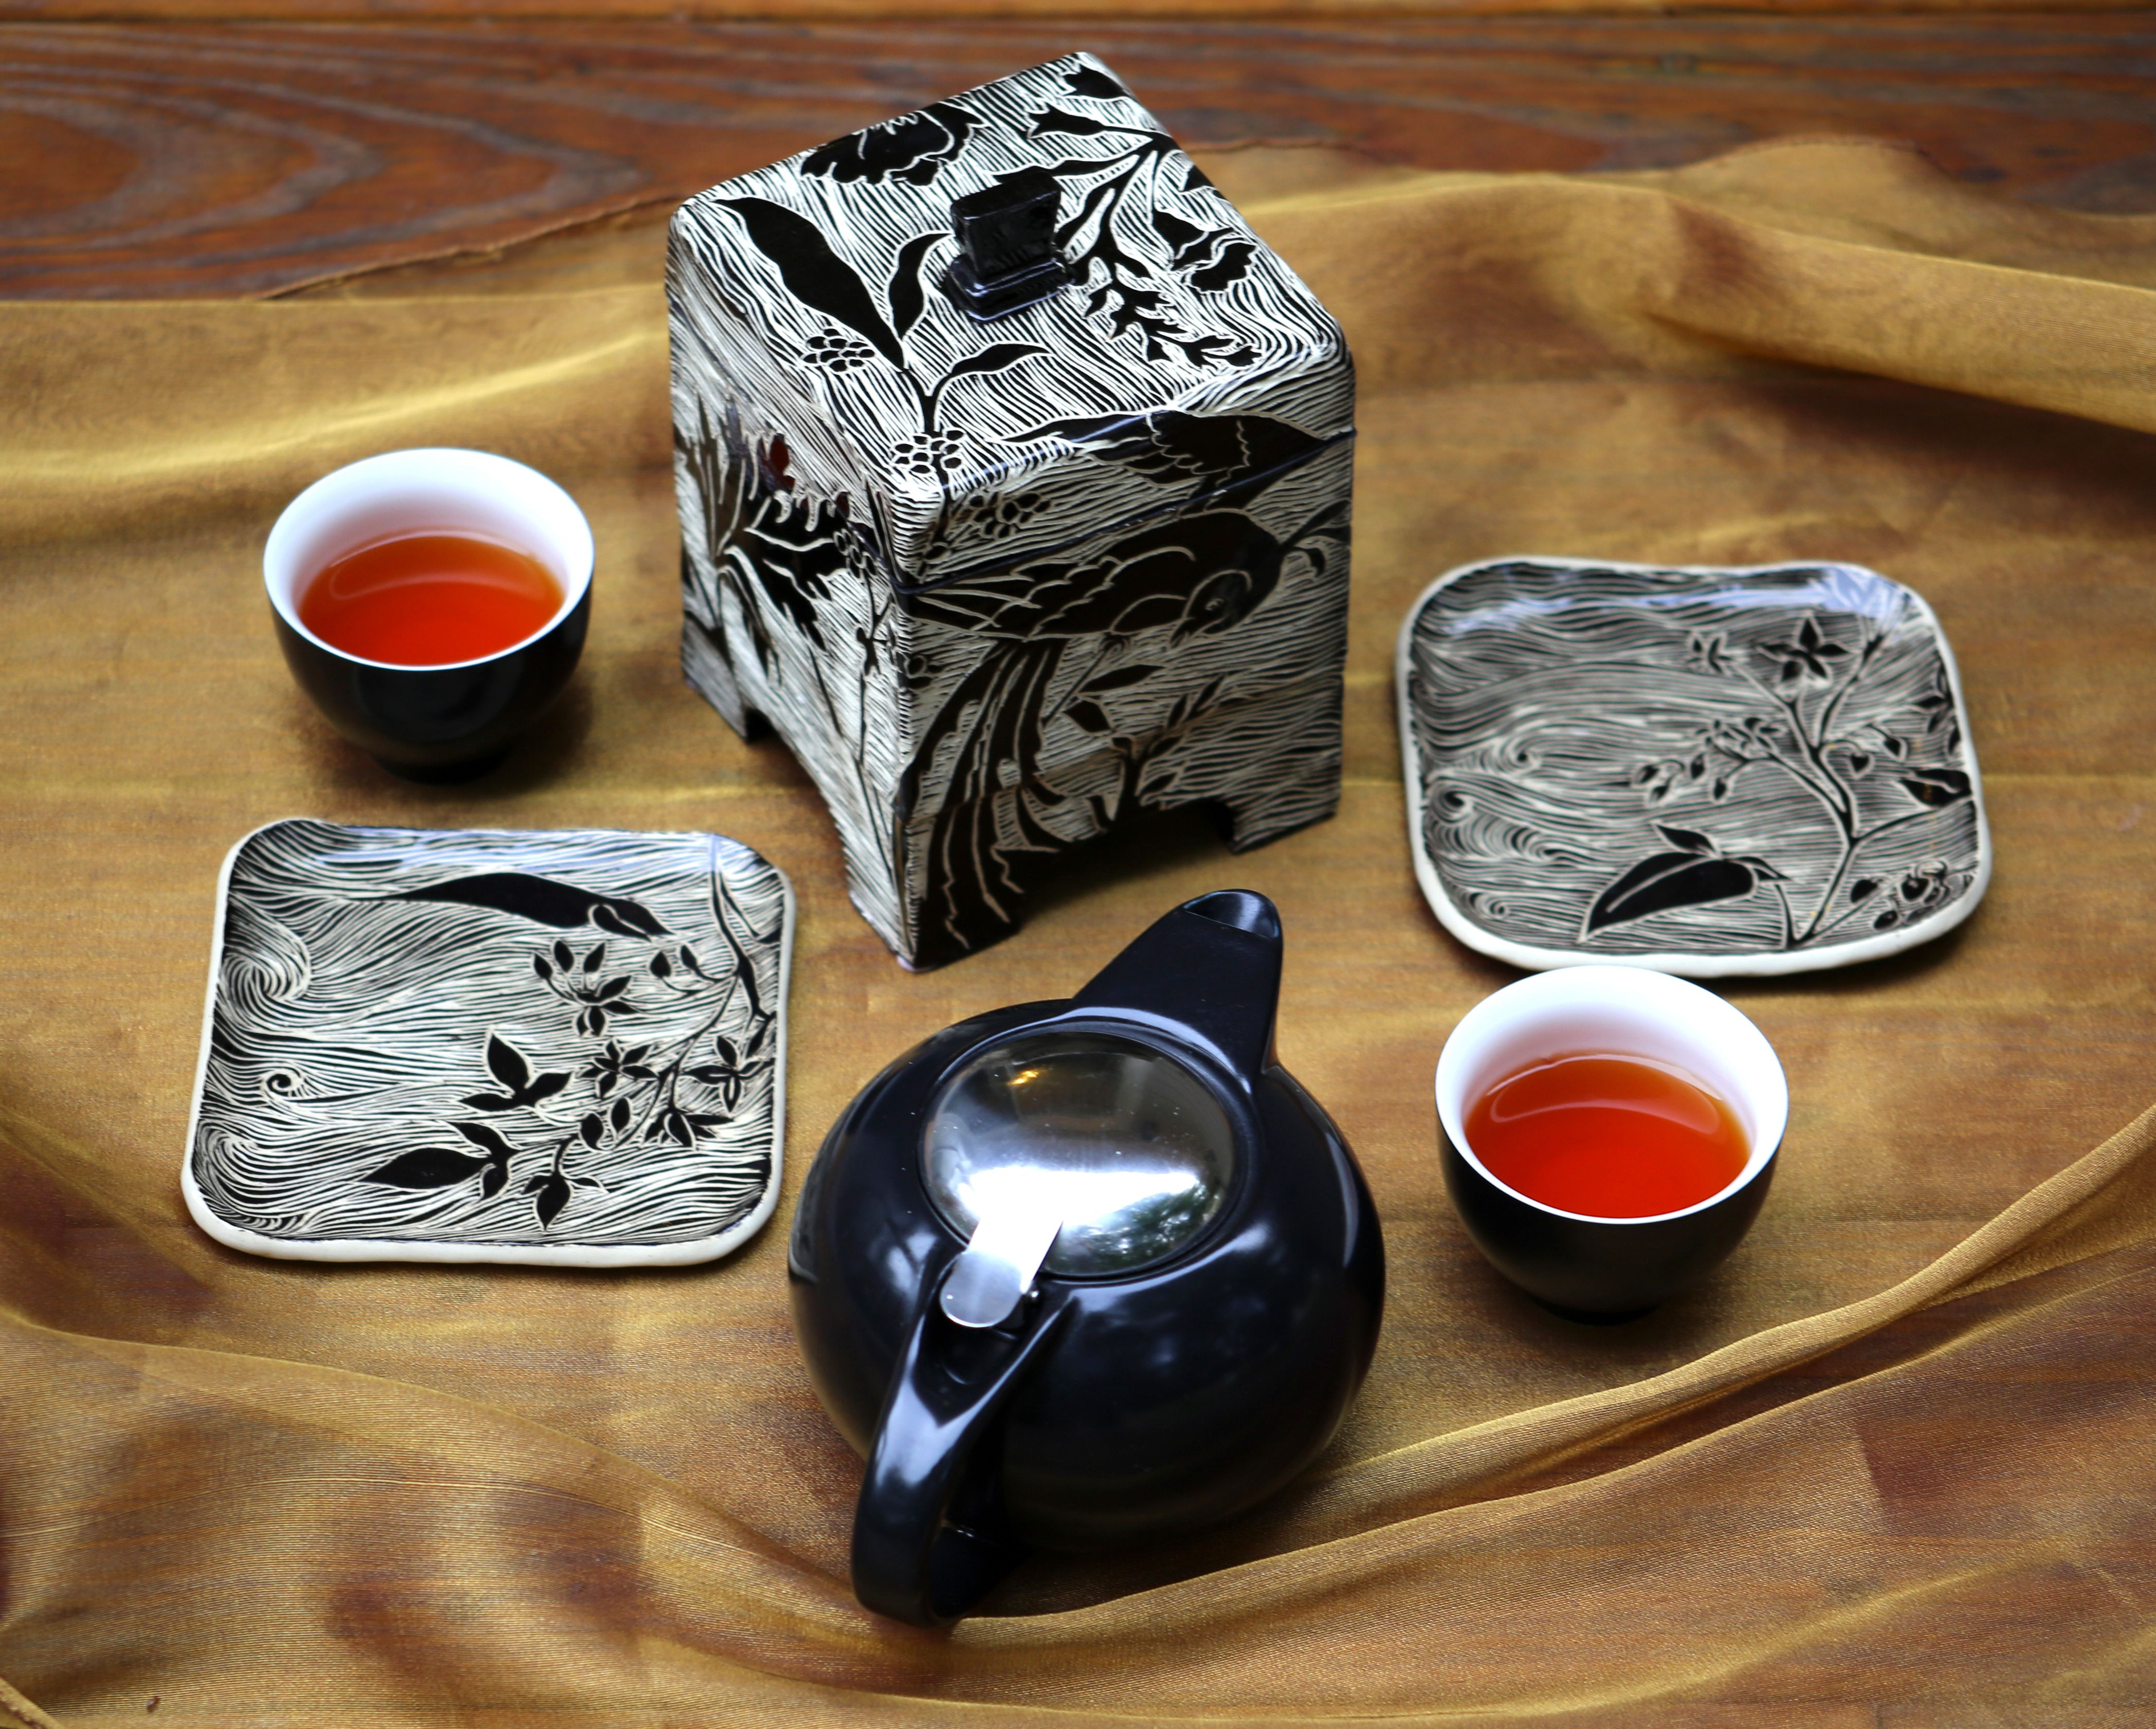 Sgraffito pottery by Gypsy Sisters Studio